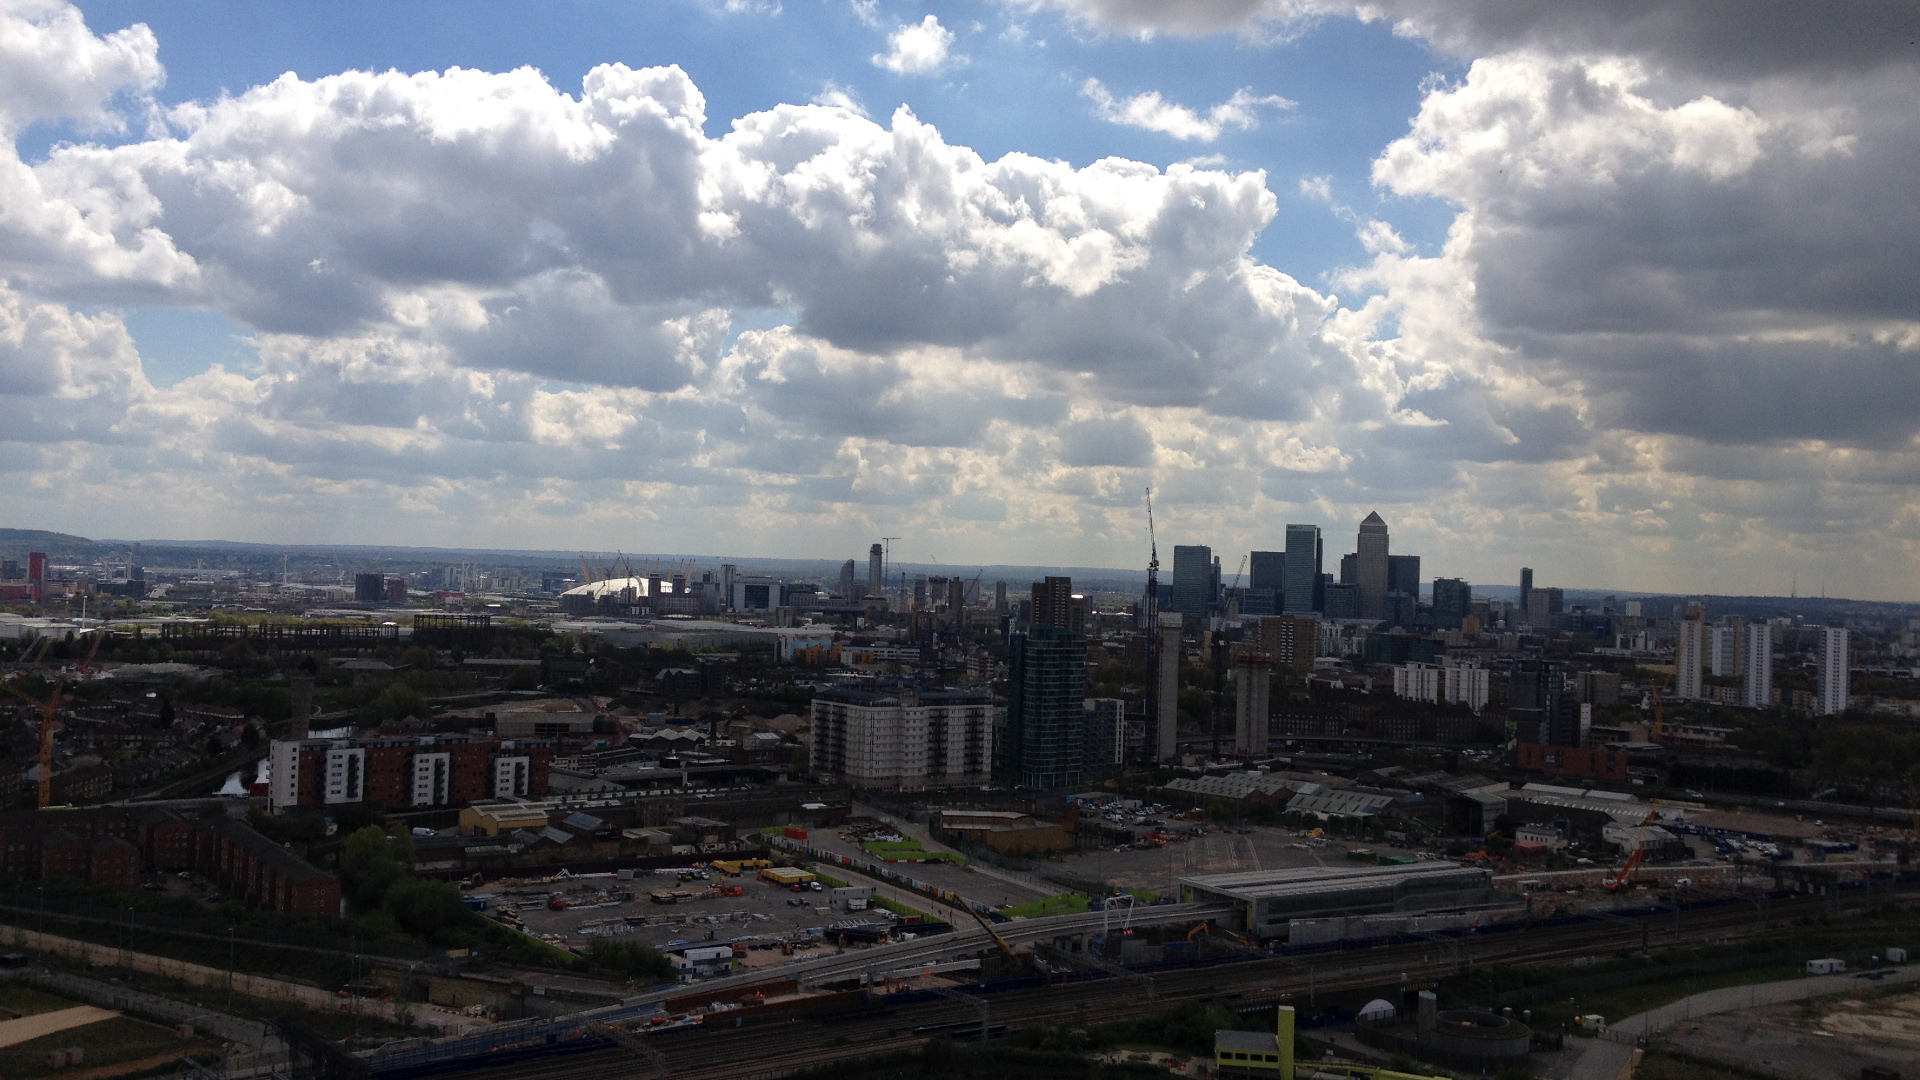 Olympic Park, London, Apr 27, 2015, by Aaron Lee, 03 Orbit Ldn view